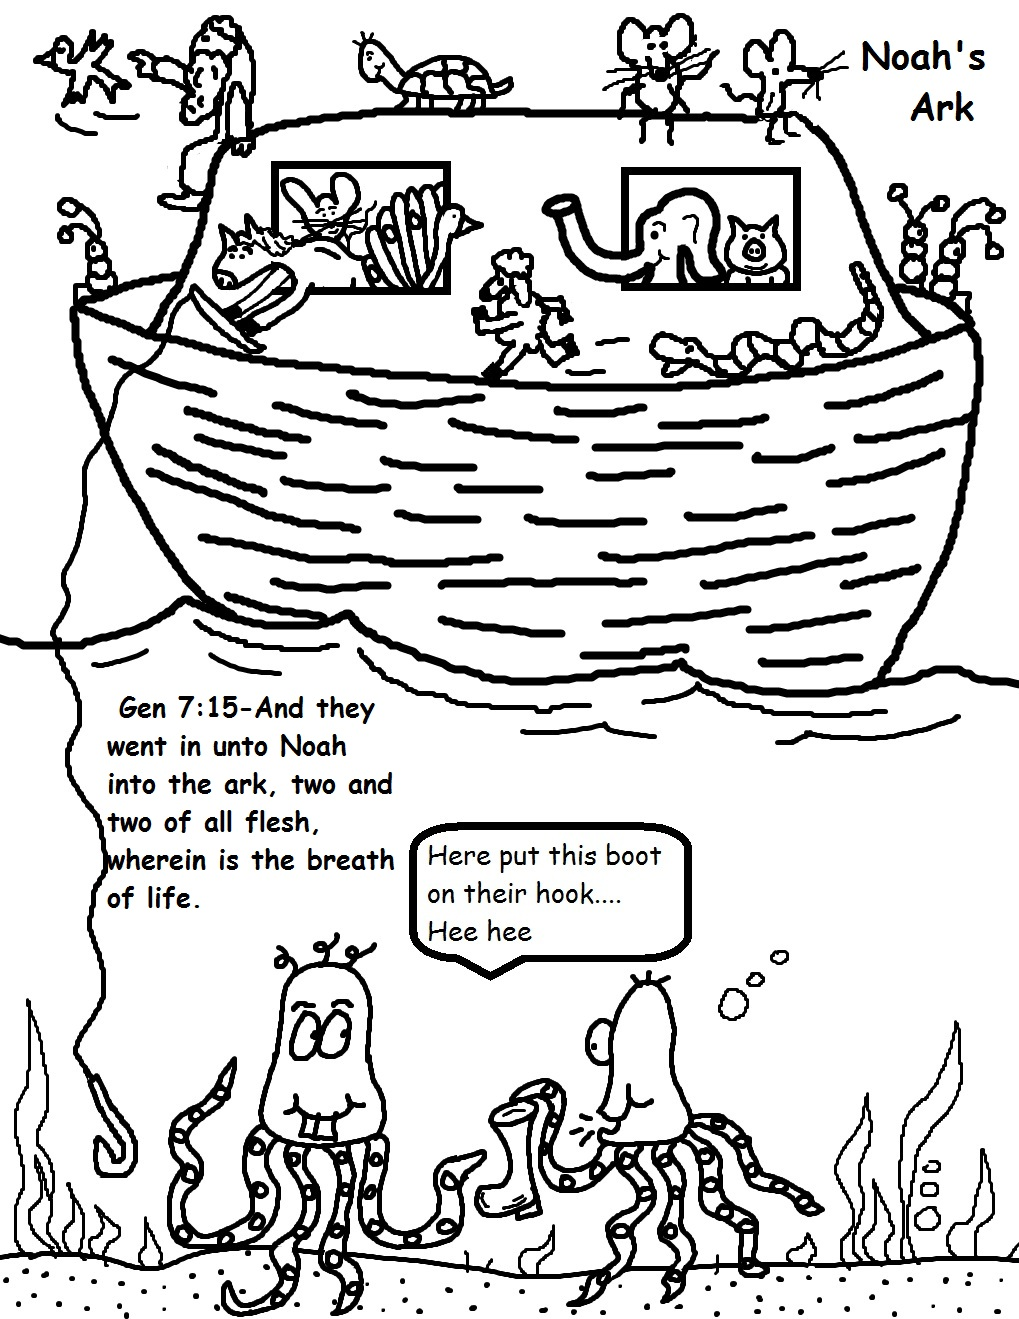 Noah's Ark Rainbow Coloring Sheet http://www.churchhousecollection.com/noahs-ark-coloring-pages.php